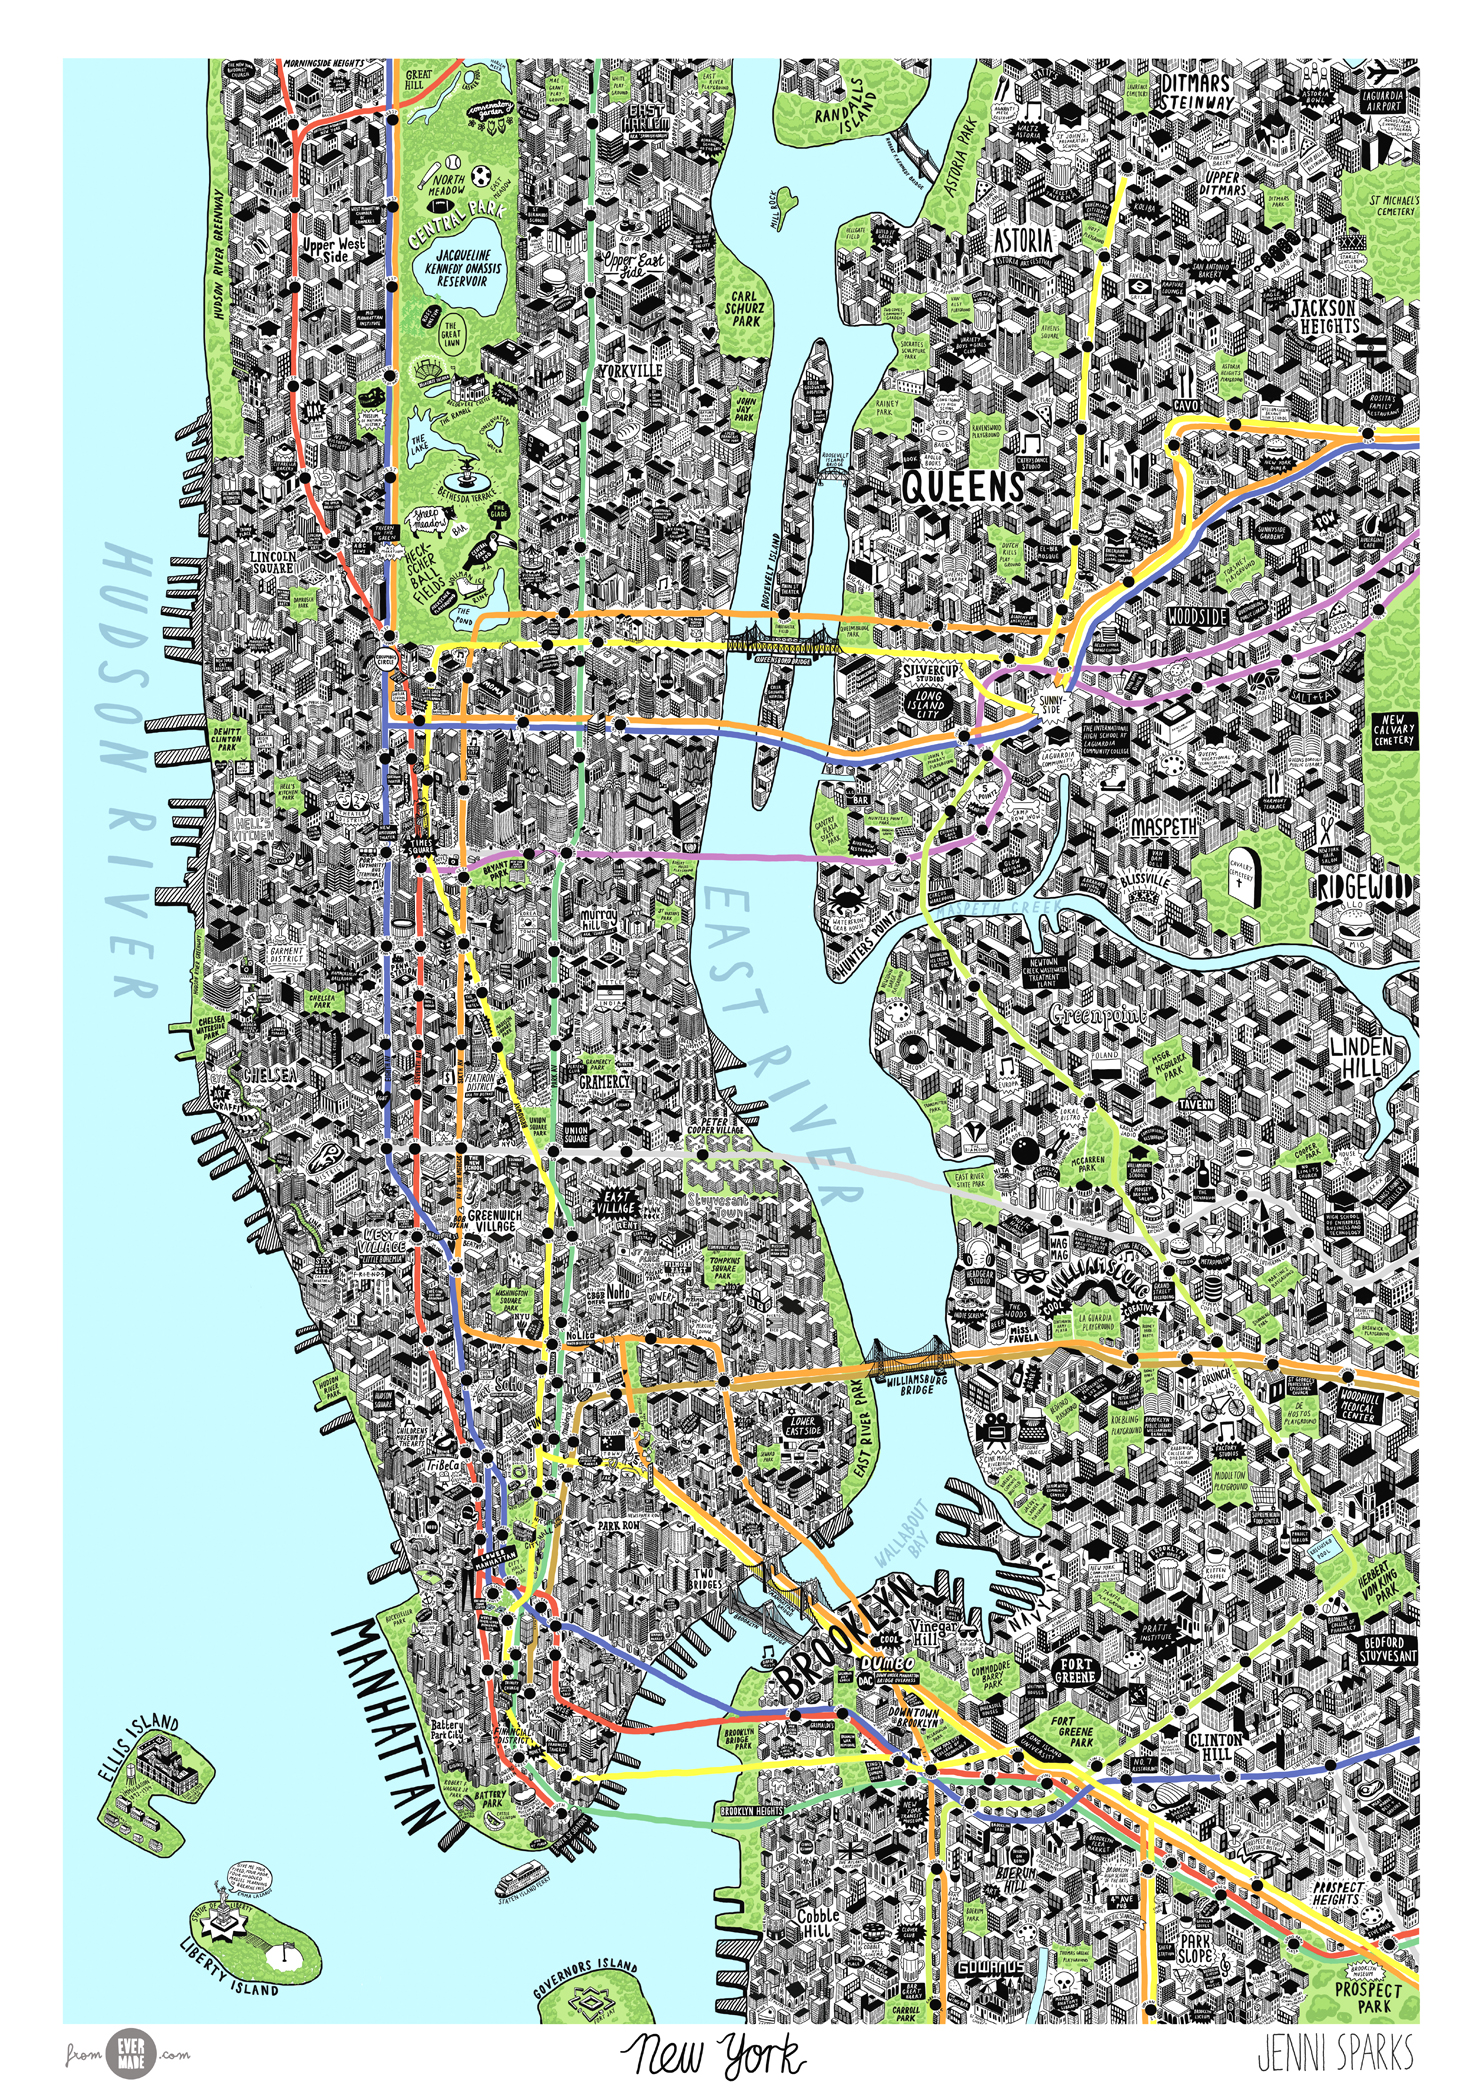 Picture Of New York Map.Hand Drawn Map Of New York Jenni Sparks